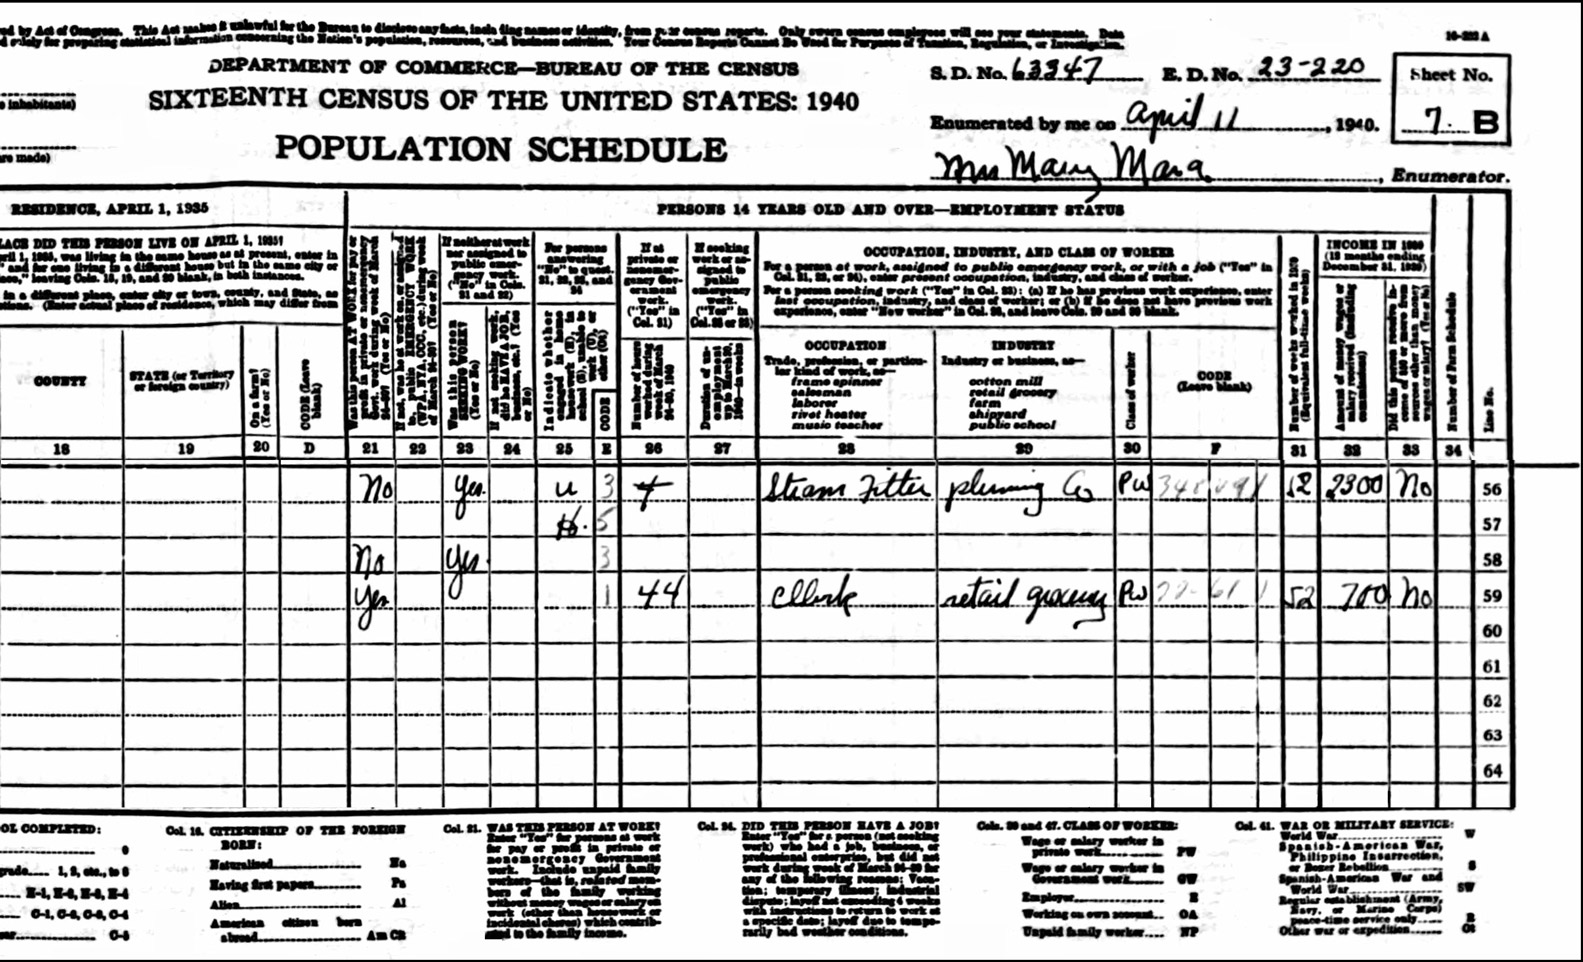 1940 US Federal Census Record for the Allister Rawding Household (Right)